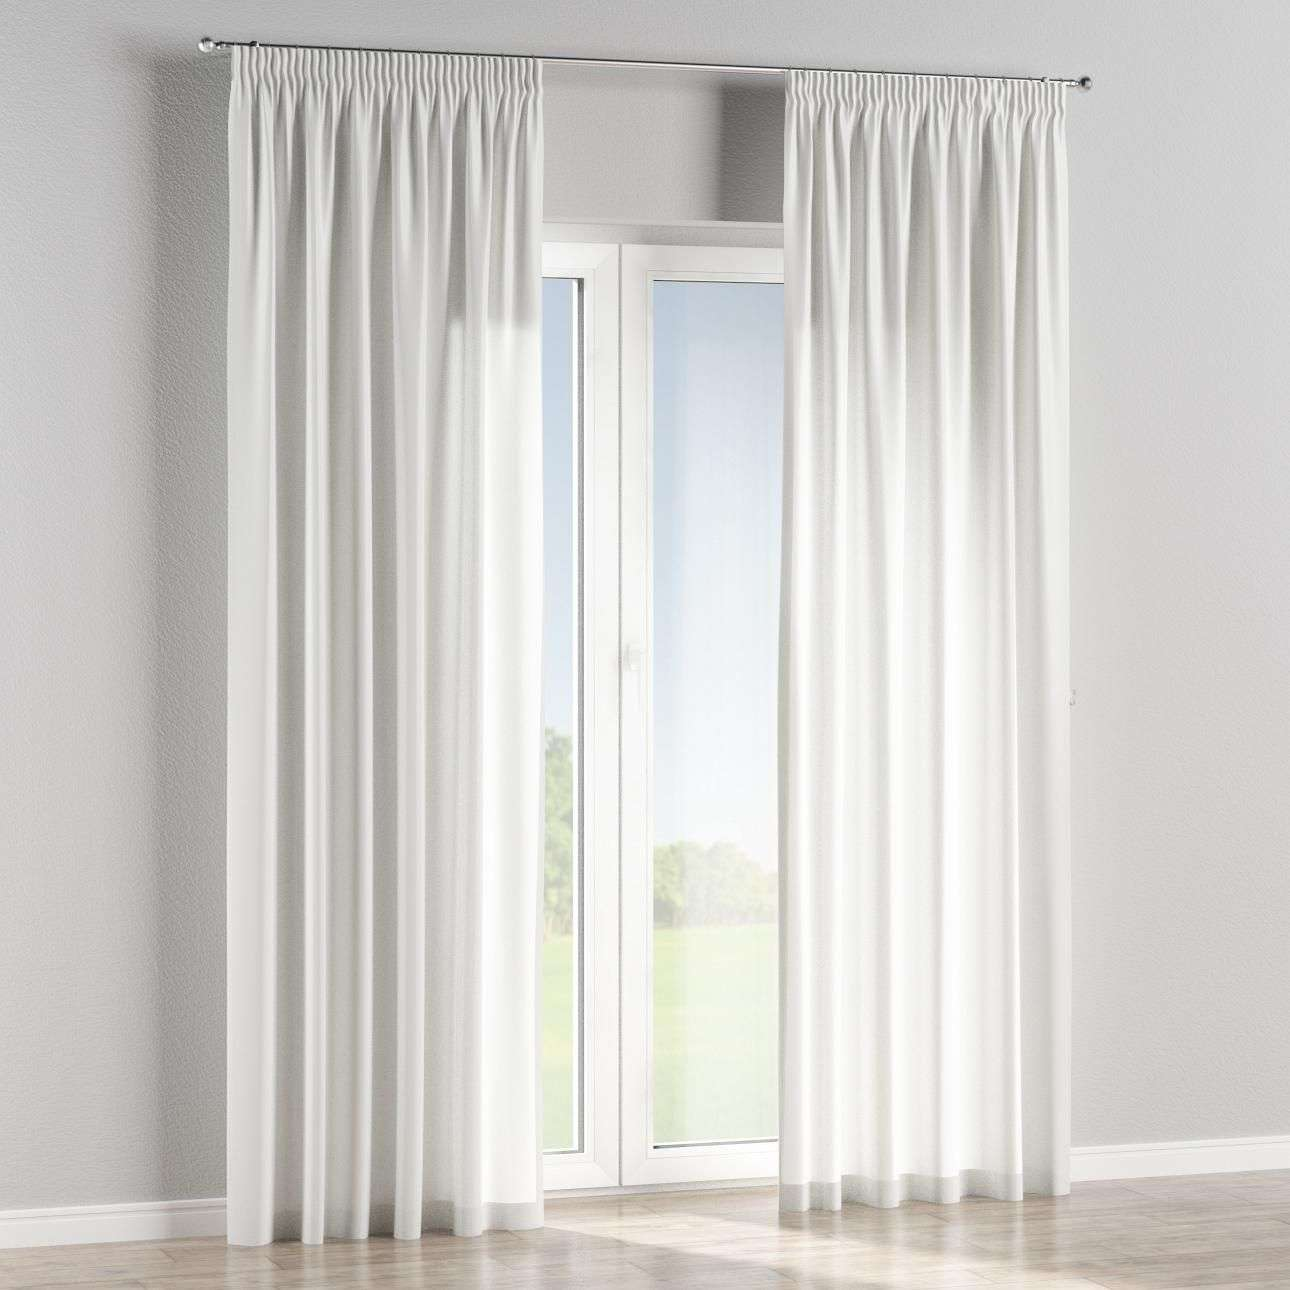 Pencil pleat curtains in collection SALE, fabric: 136-31